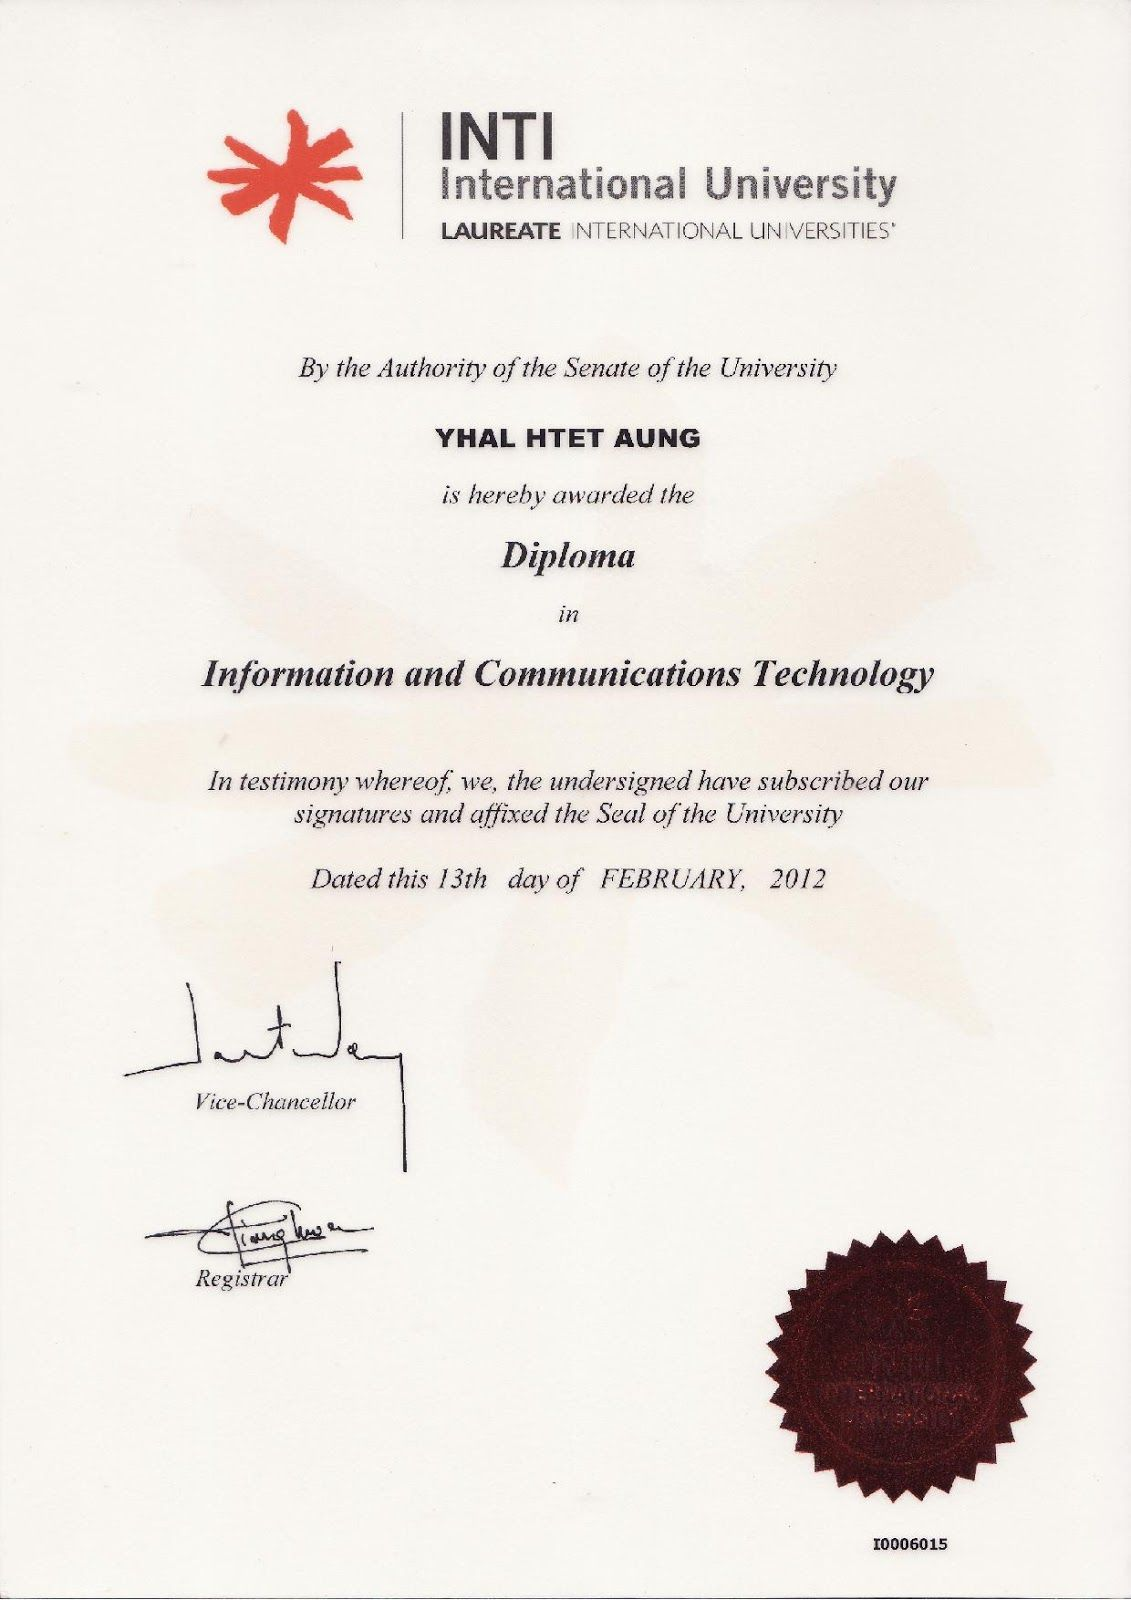 Diploma in Information and Communication Technology, INTI University (Malaysia)